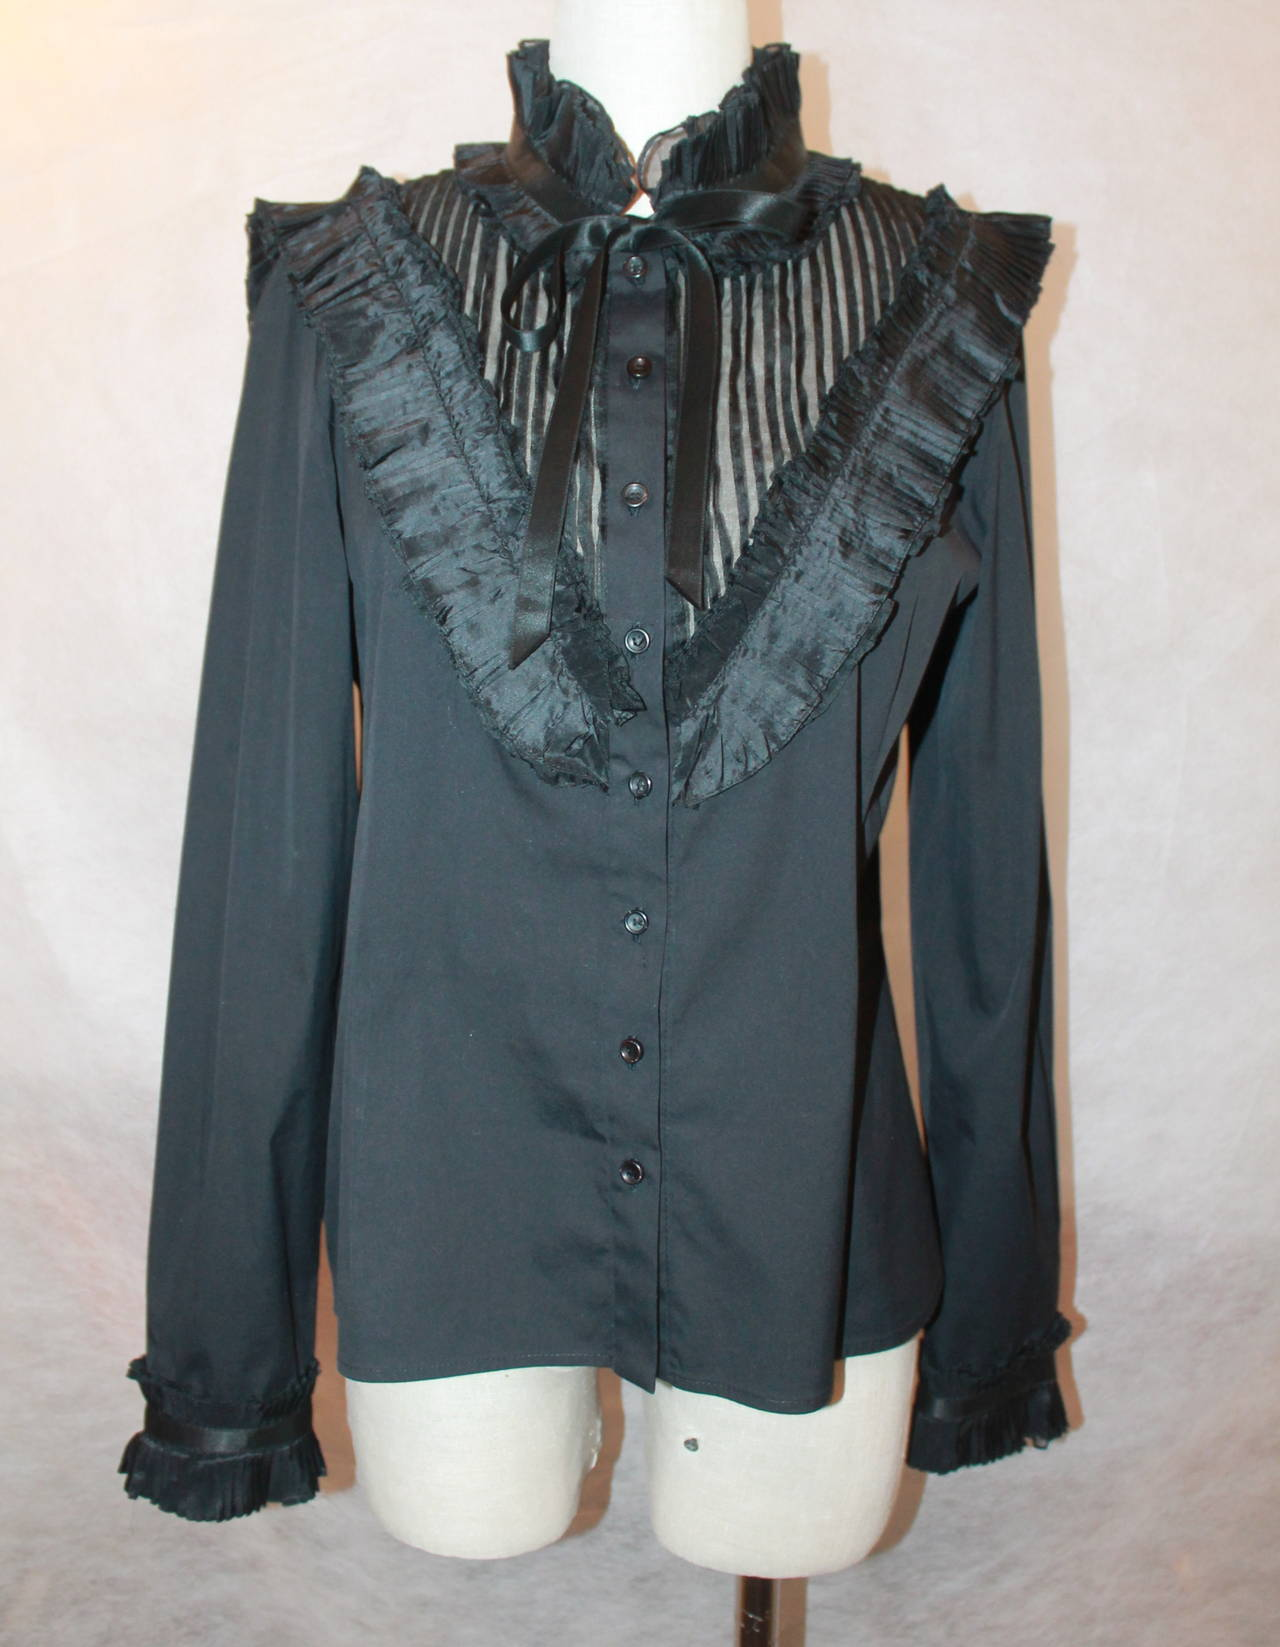 Oscar de la Renta Black Peasant Style Top with Pleating - M. This top is in very good condition with very minor fraying due to use along the neck detail. The cuffs also have a pleated design. 